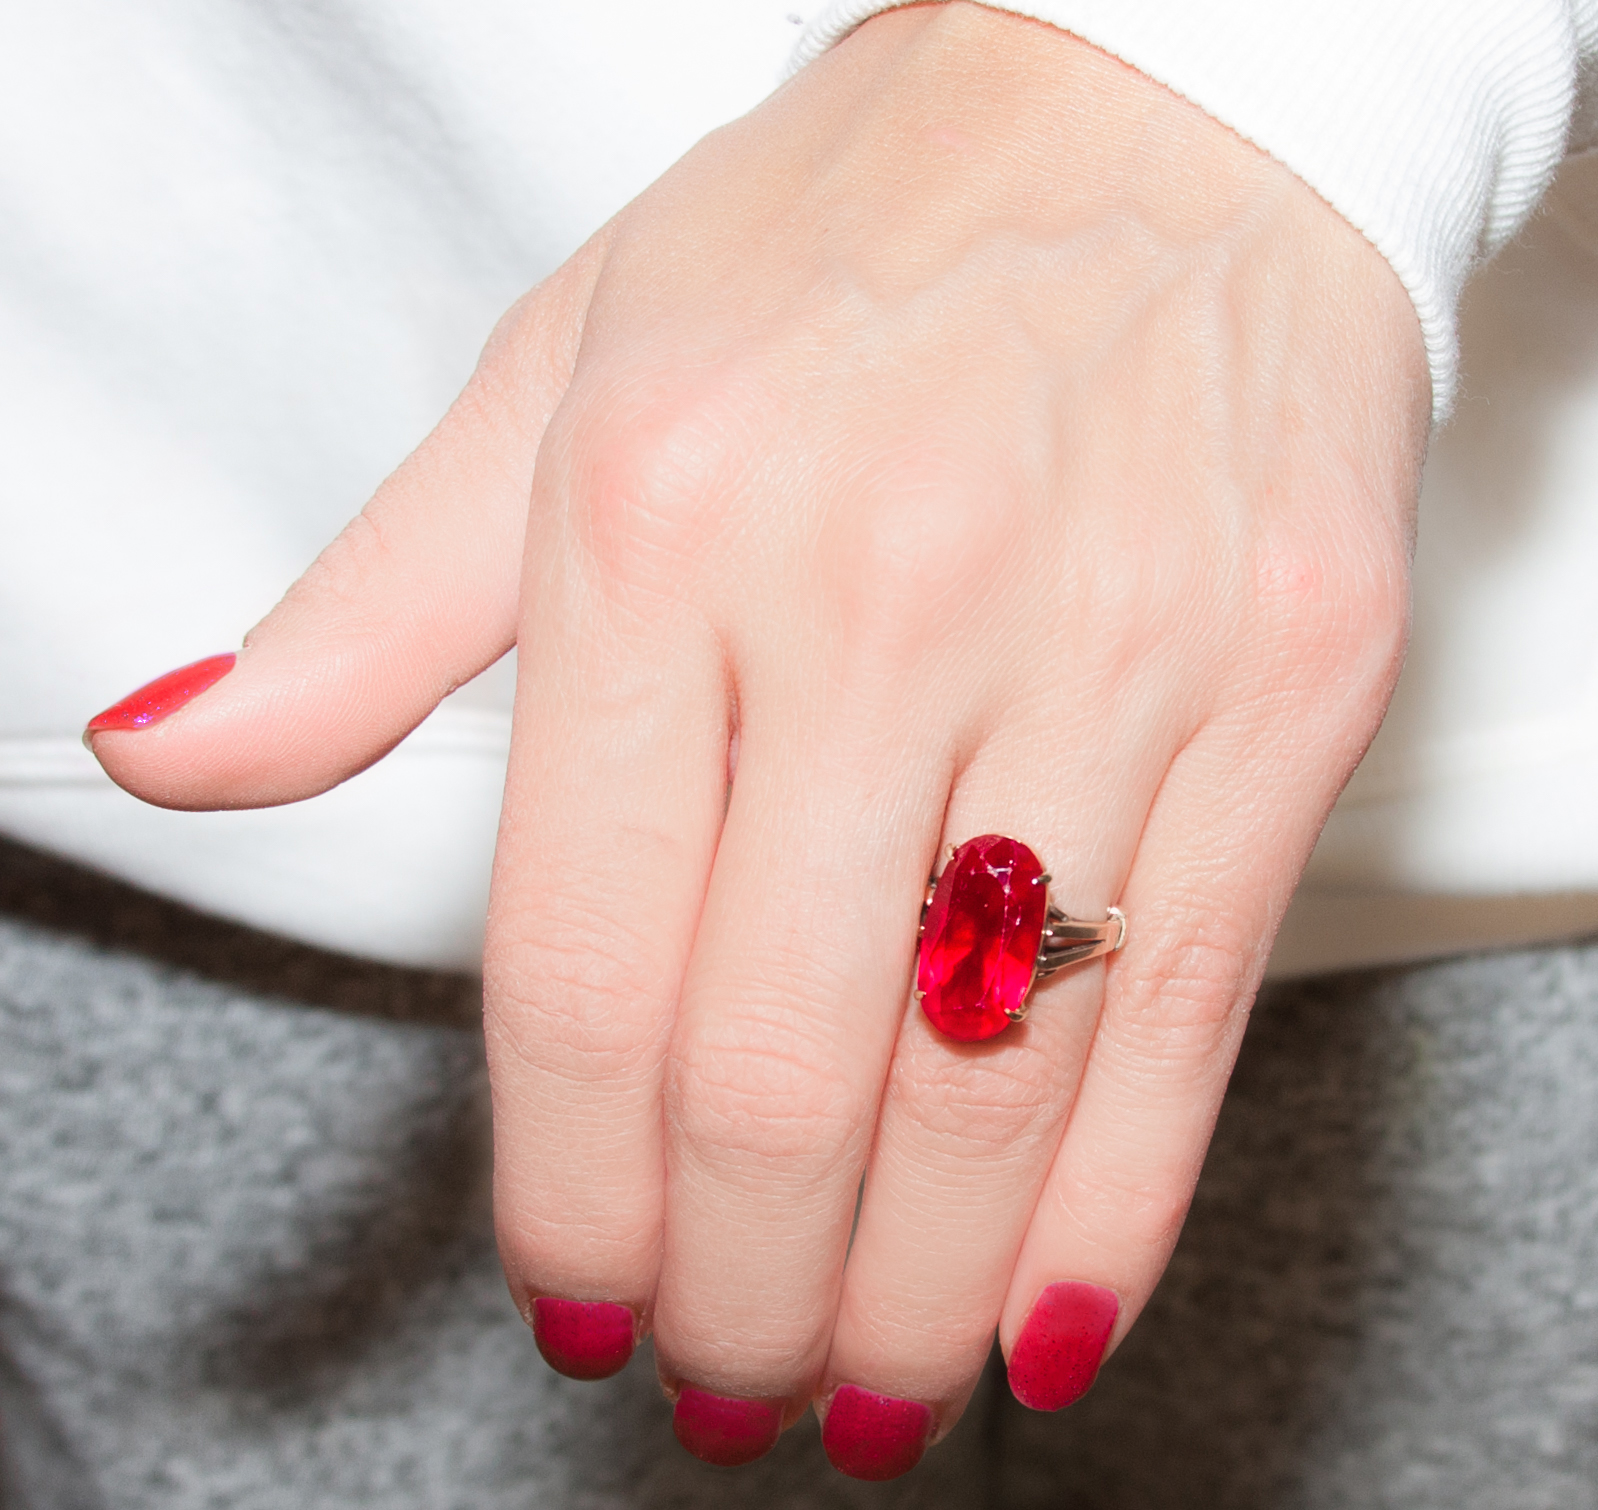 Angie Goff's most prized possession, an heirloom ruby ring passed down from her grandfather